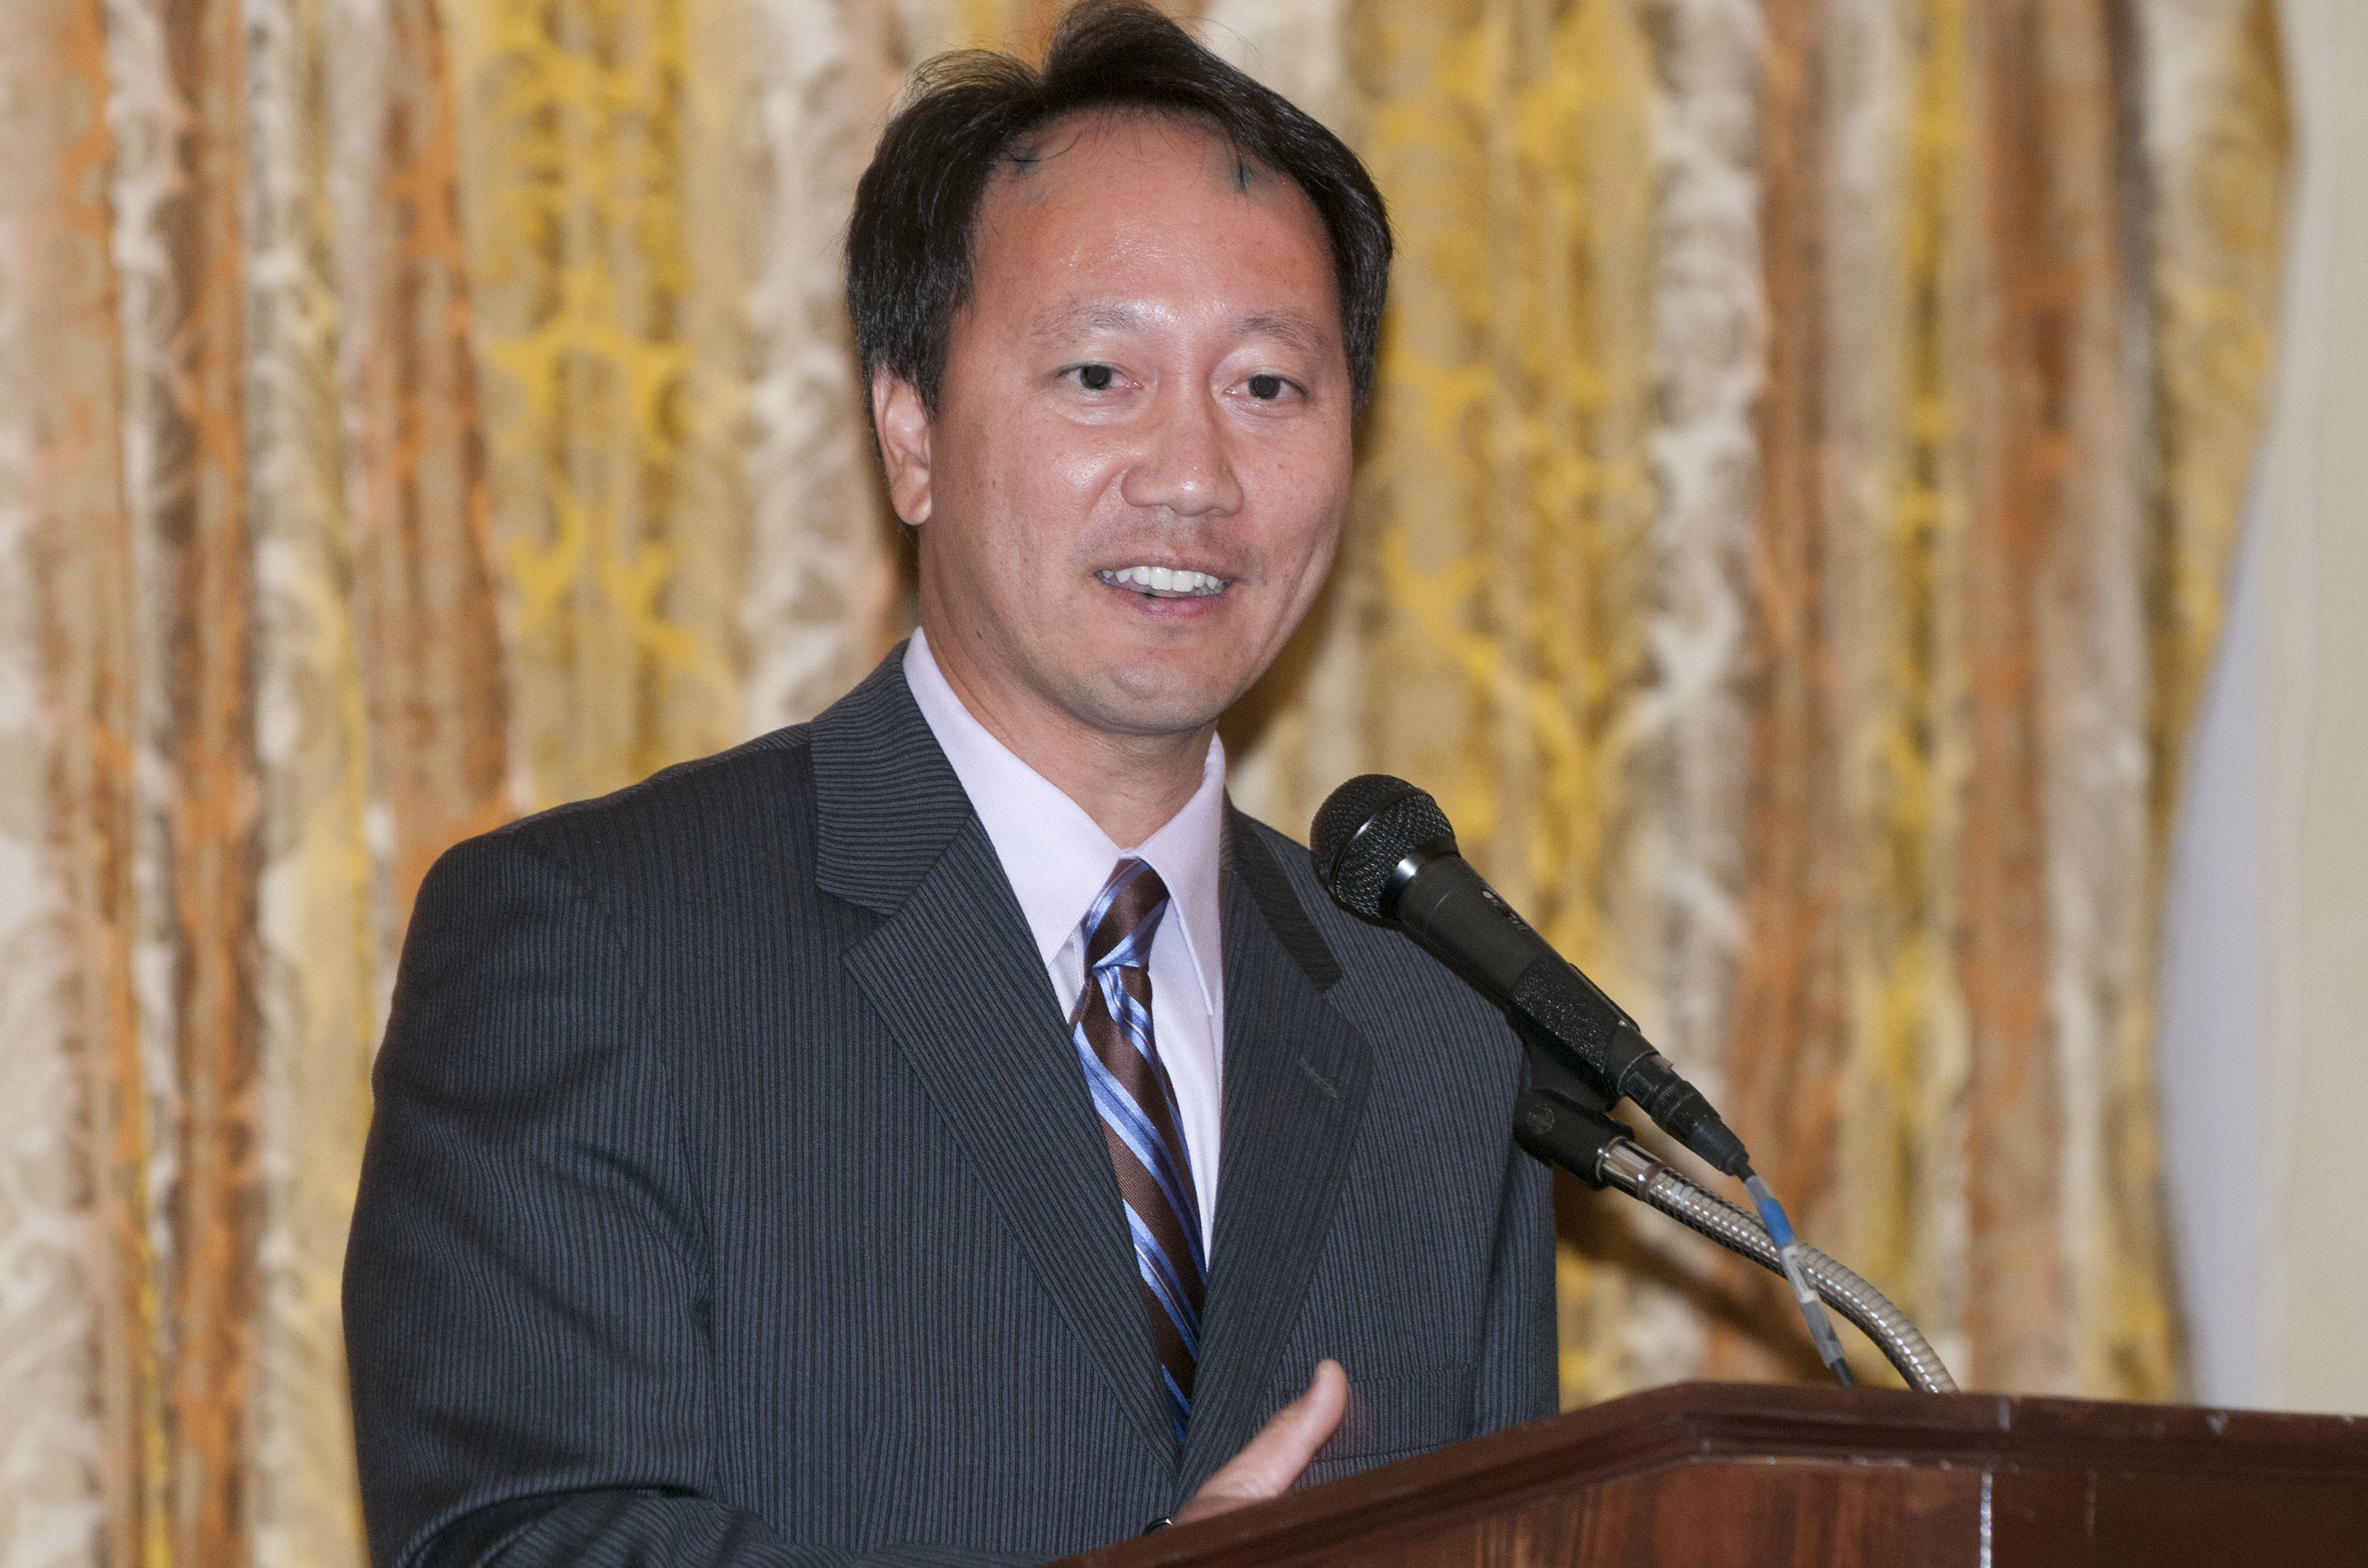 Michael Chang Highlighted in October 2013 USTA Newsletter